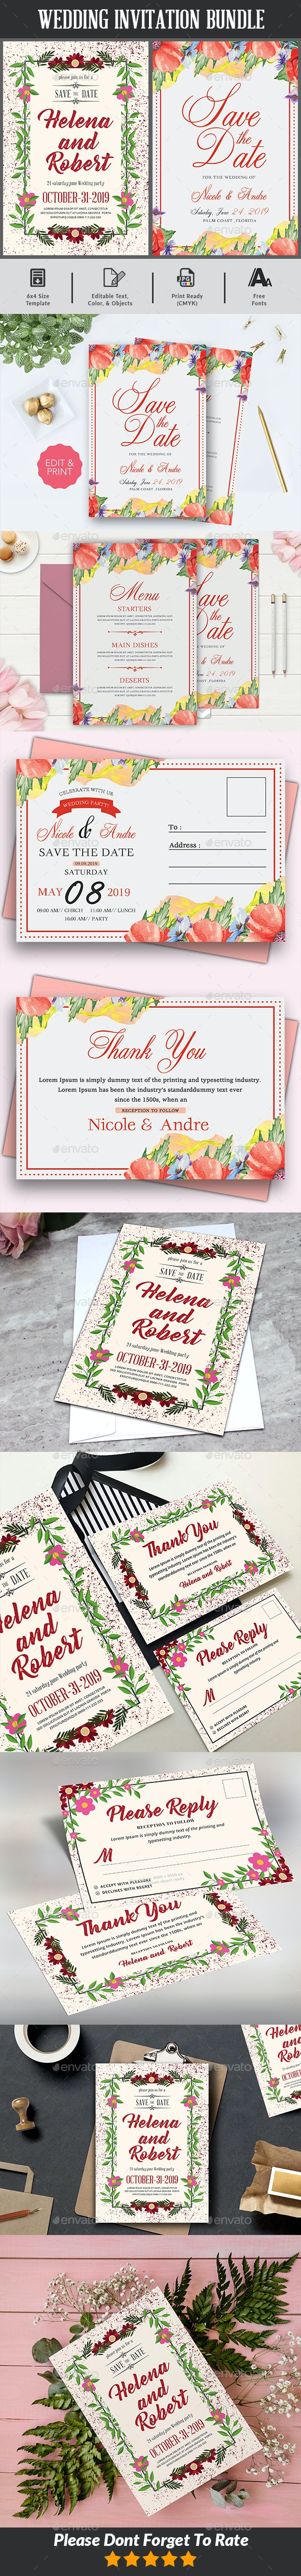 Save The Date Flyer Bundle - Weddings Cards & Invites